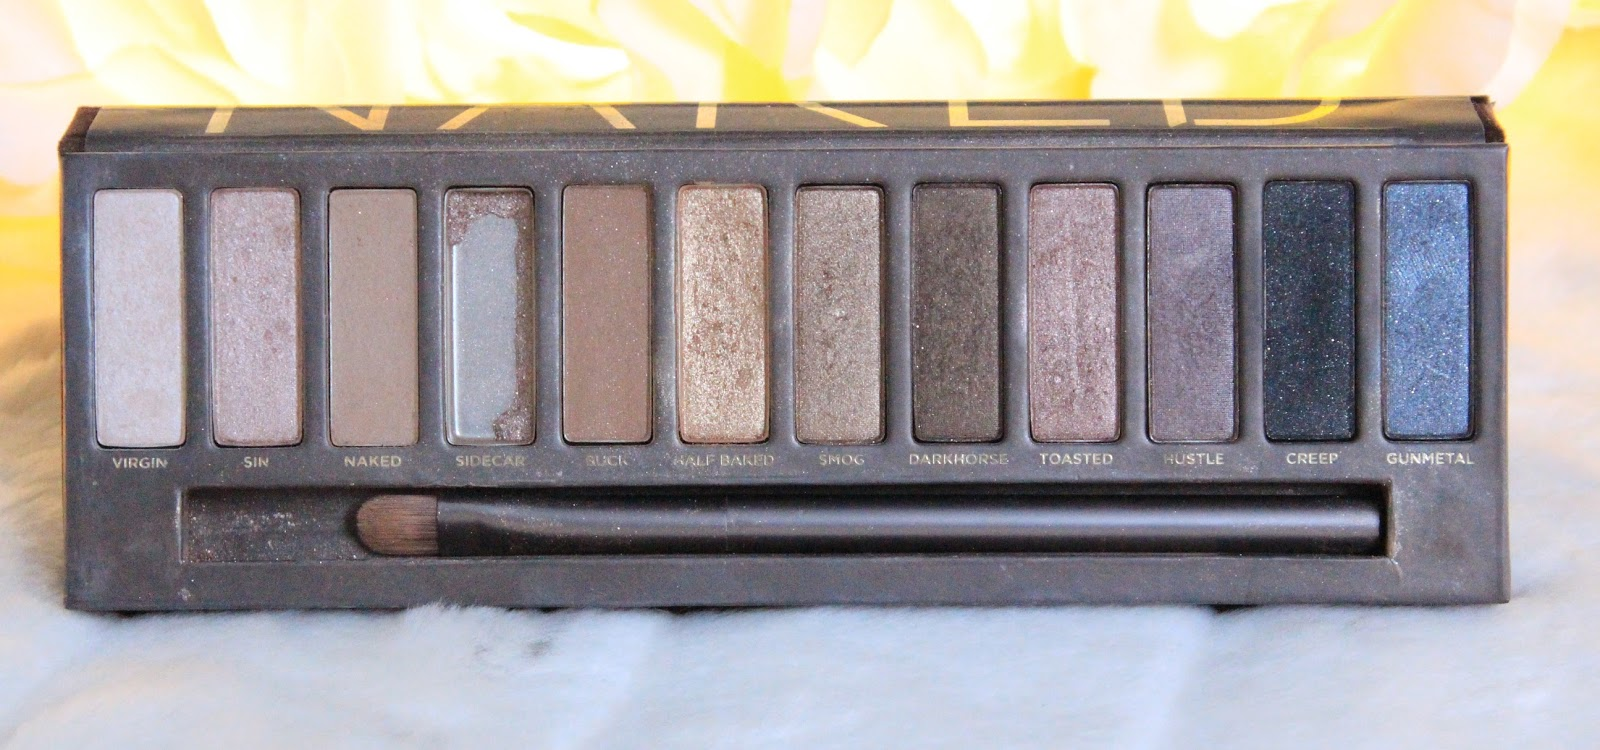 Too Faced Chocolate Bar Palette or Naked Palette which is better